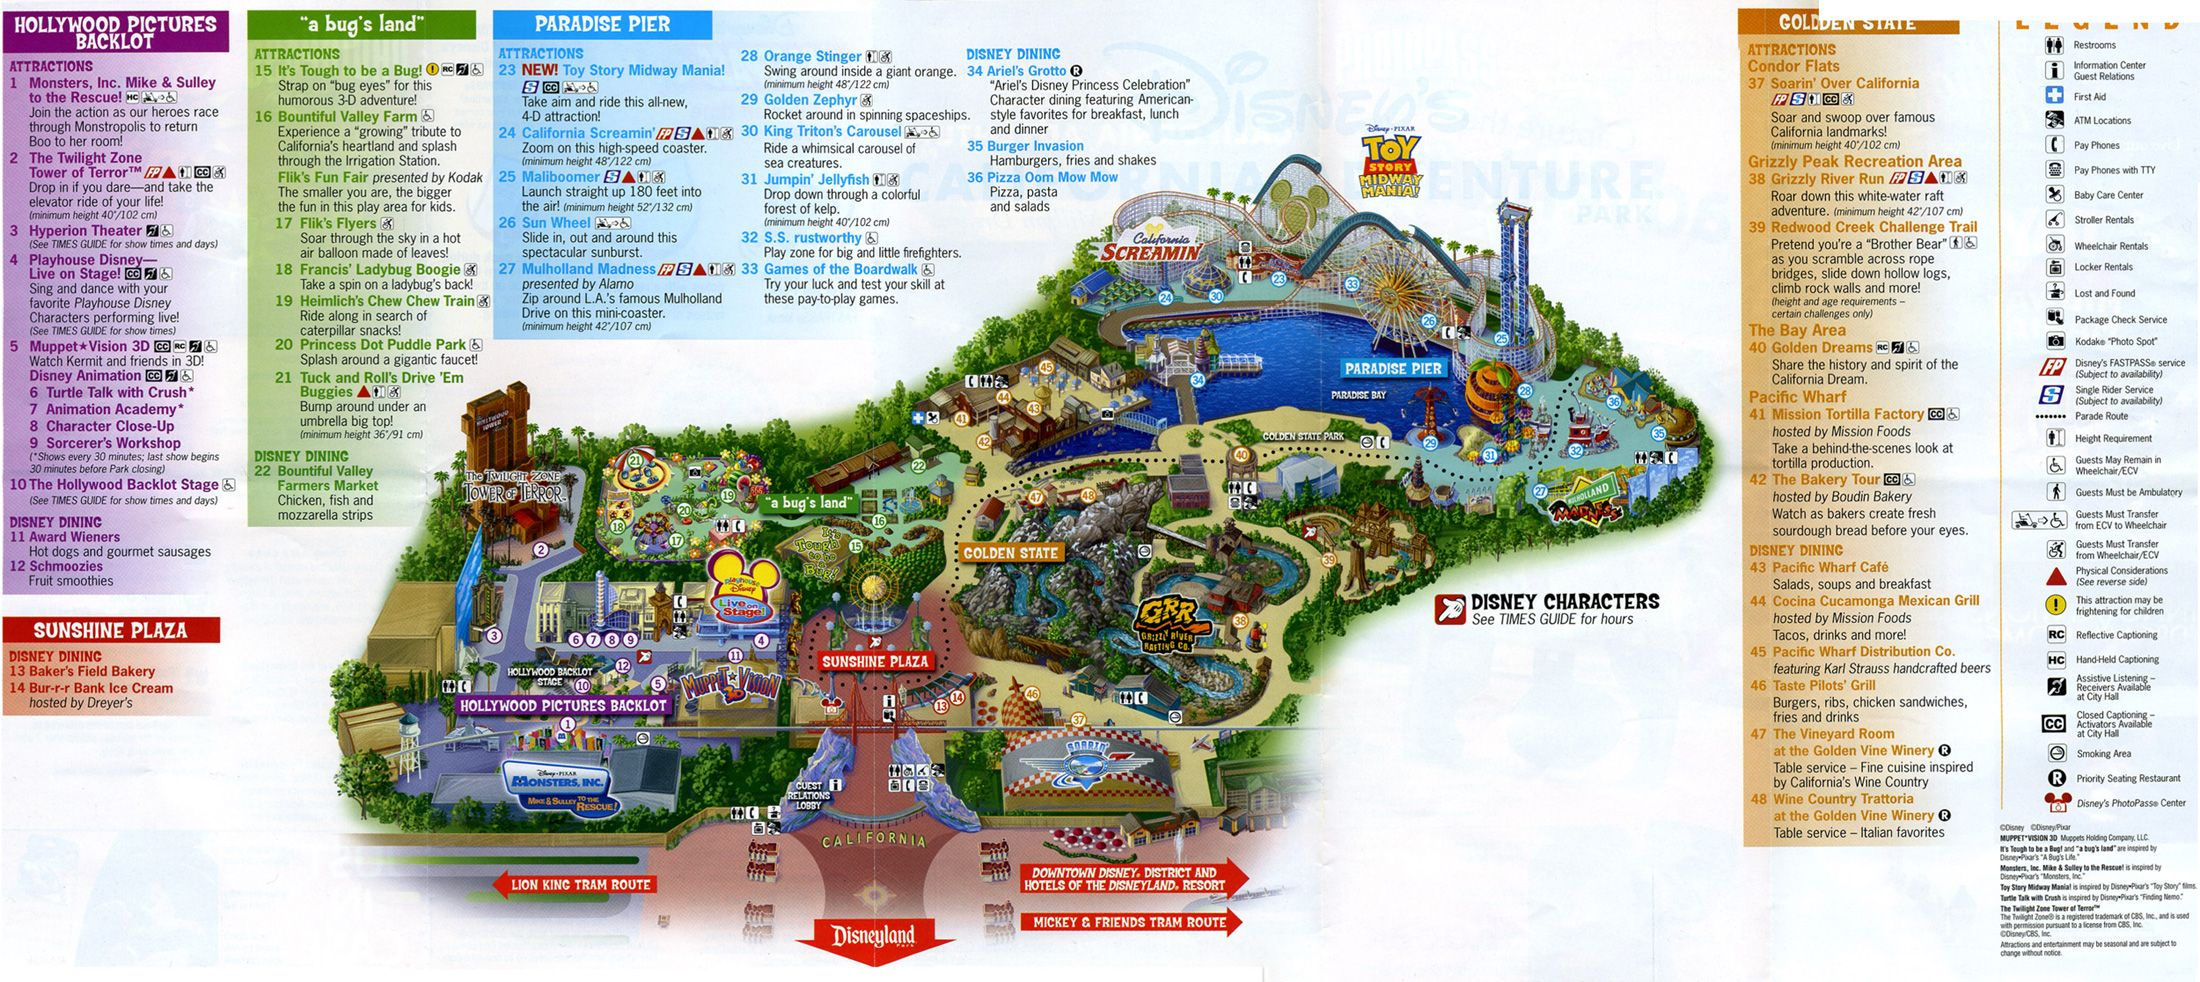 the disneys america theme park essay The essay must be in apa format tags park theme america disneys case question answer articles years case format research case 9 - disney's america theme park.